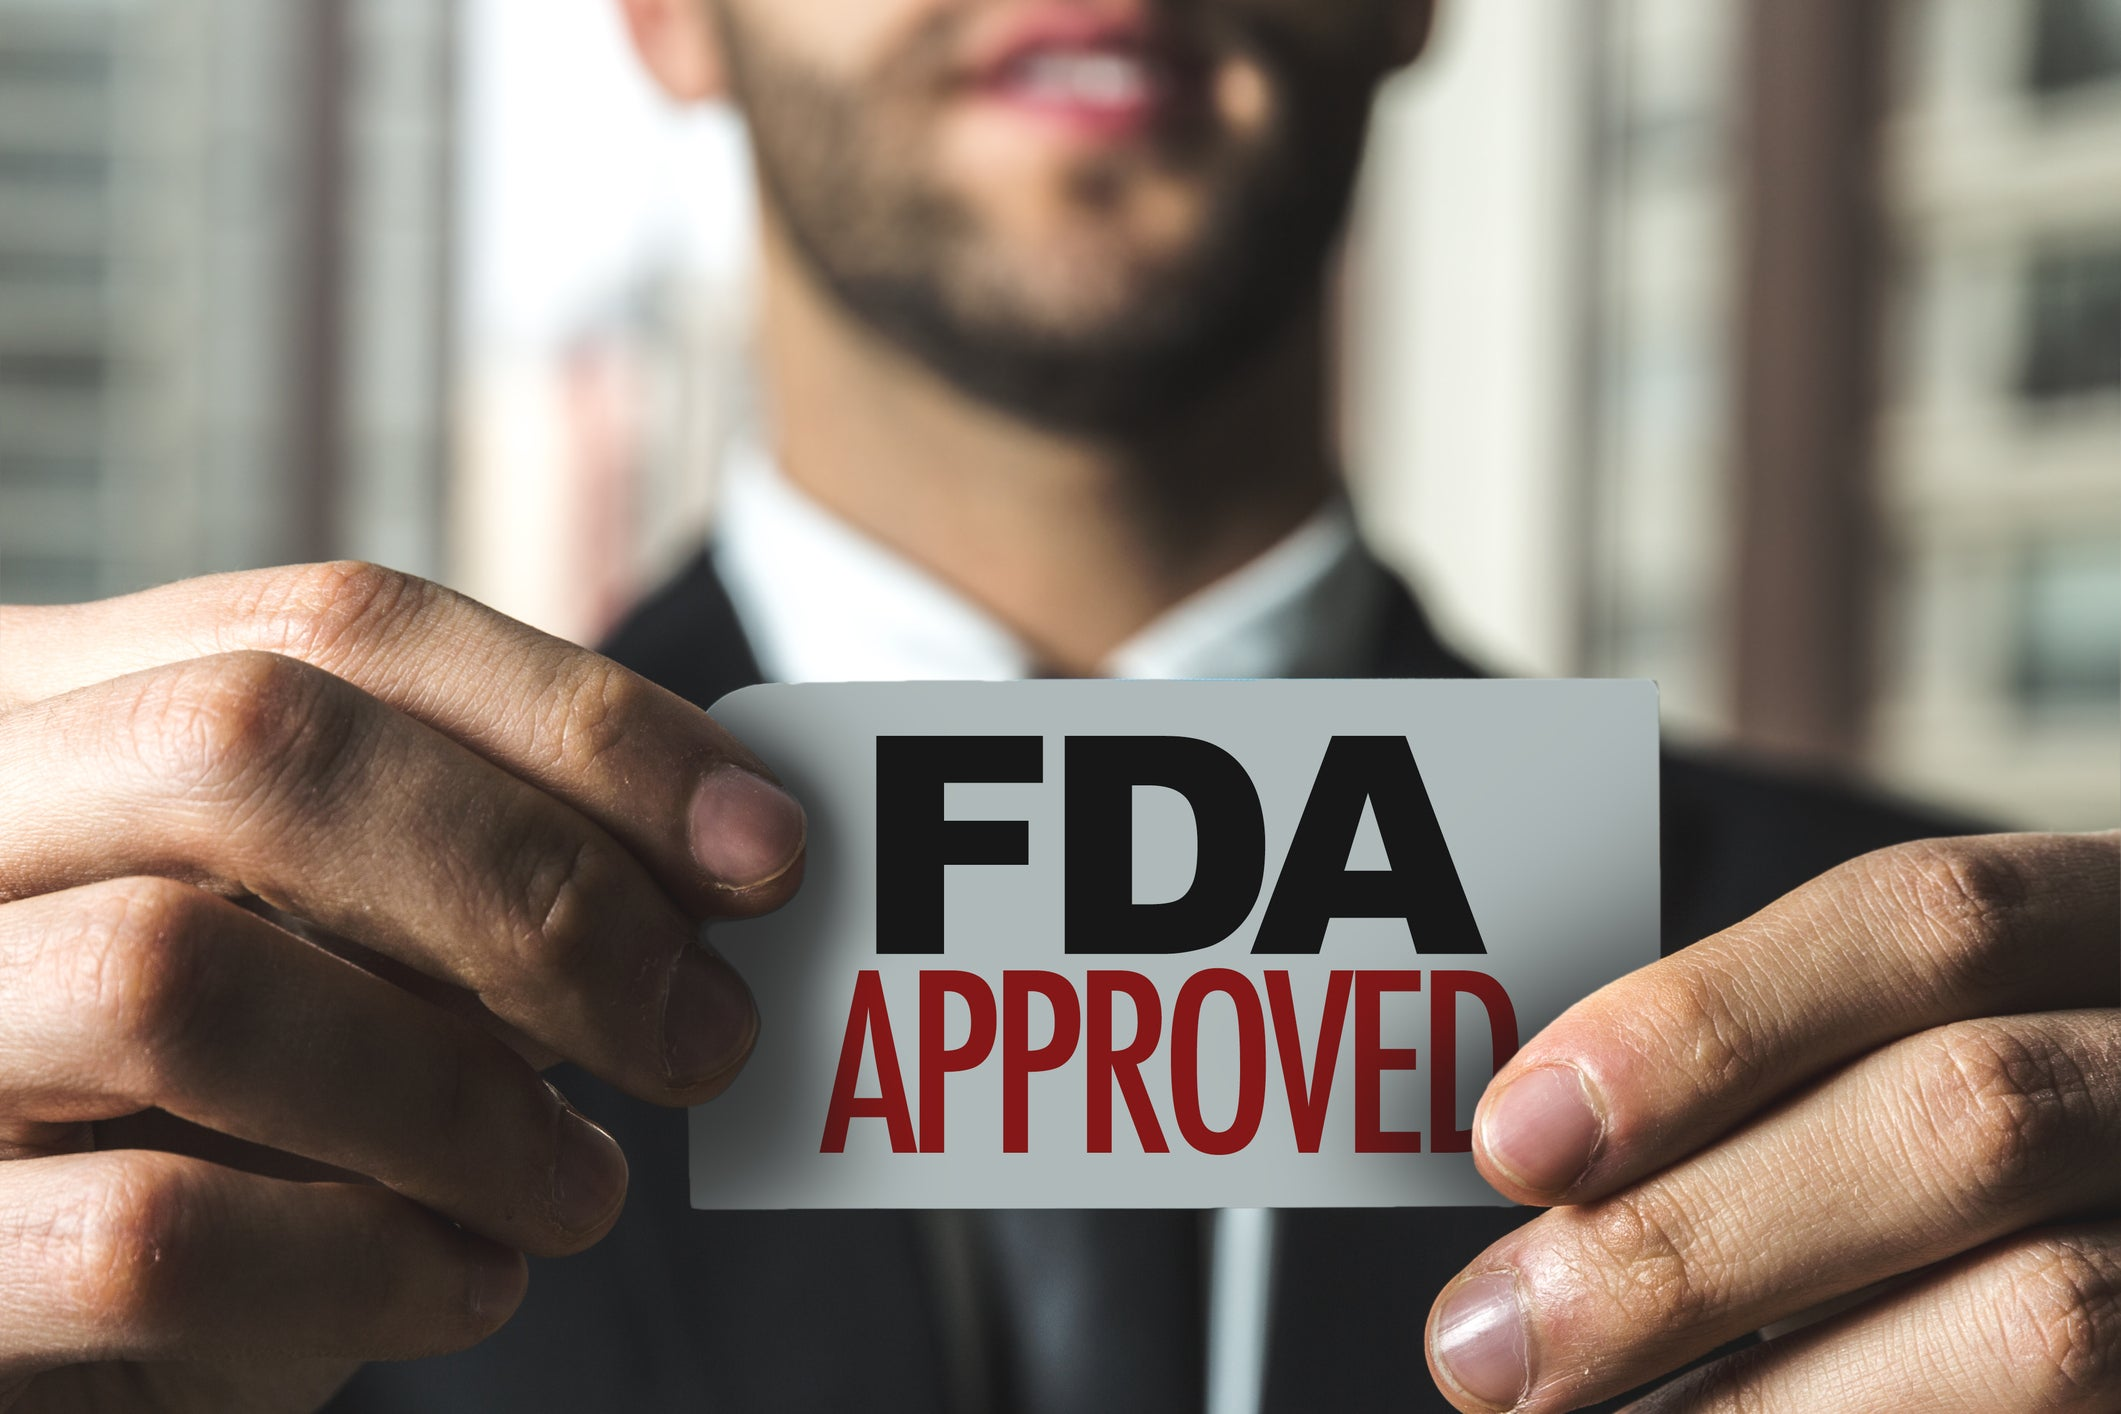 How Huge Is the Latest HIV Drug Approval for Gilead Sciences? -- The